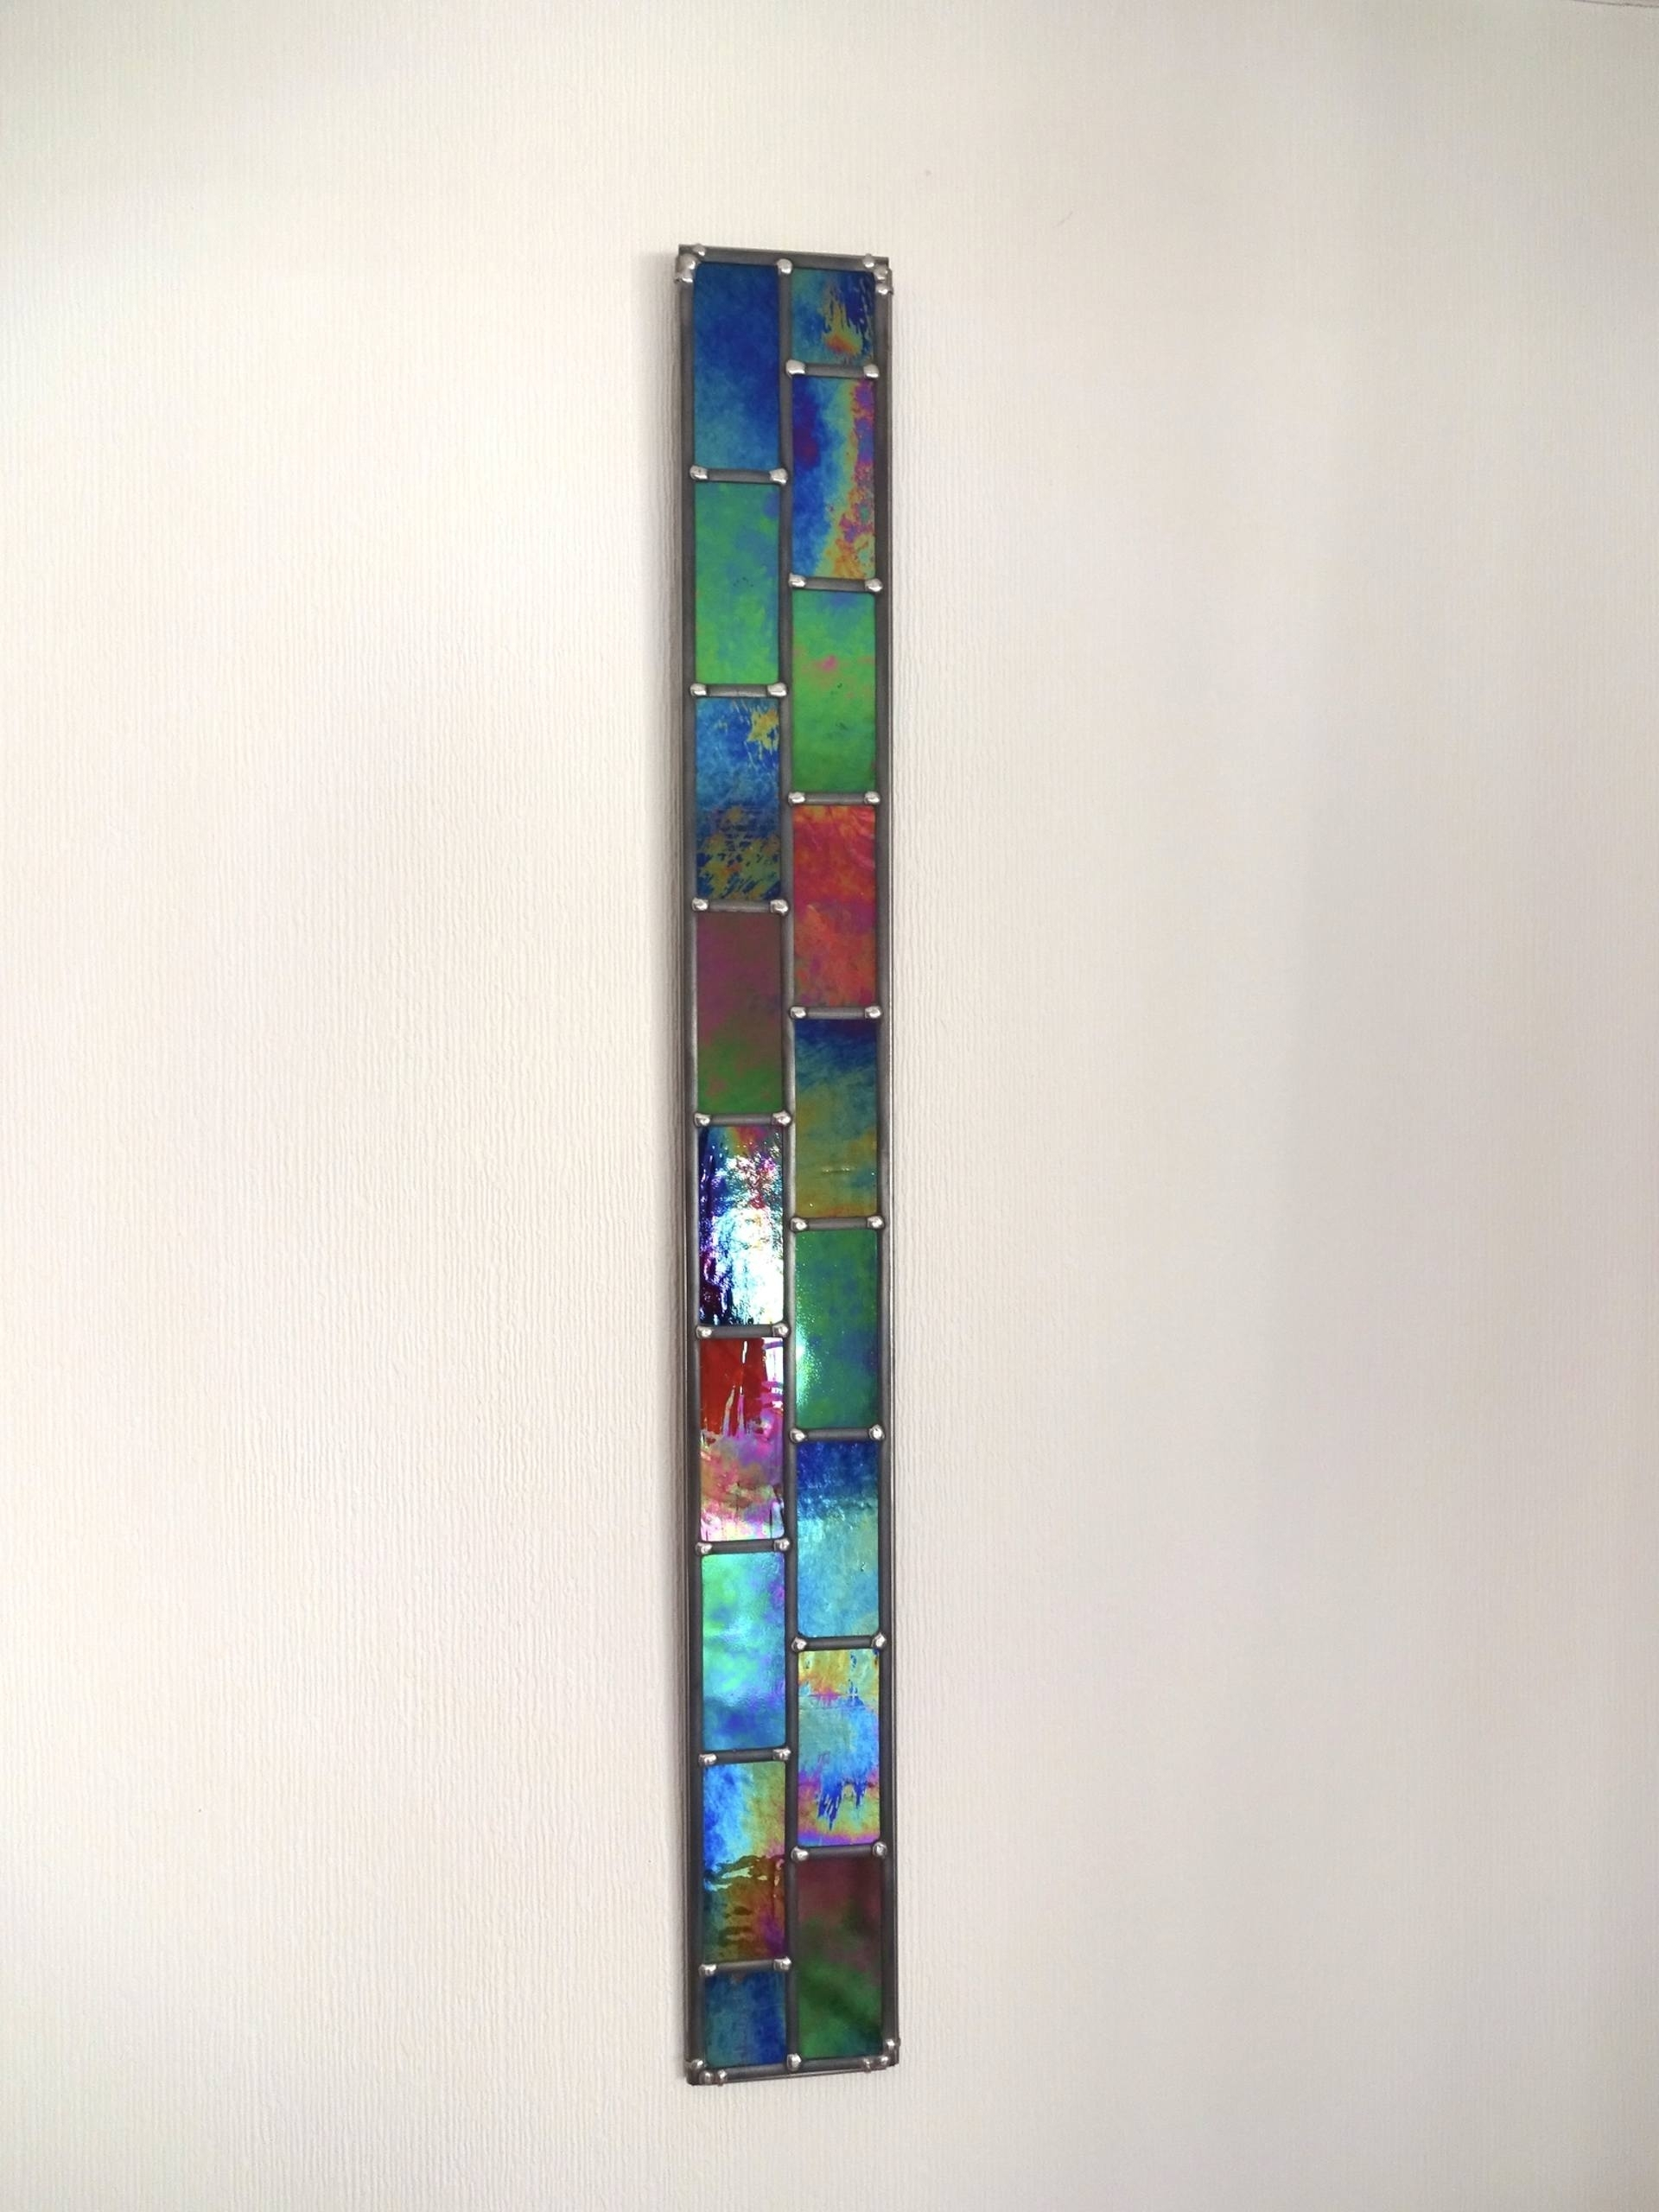 Saatchi Art: Stronger Together – 2D Opaque Stained Glass Wall Art Regarding Recent Stained Glass Wall Art (View 17 of 20)